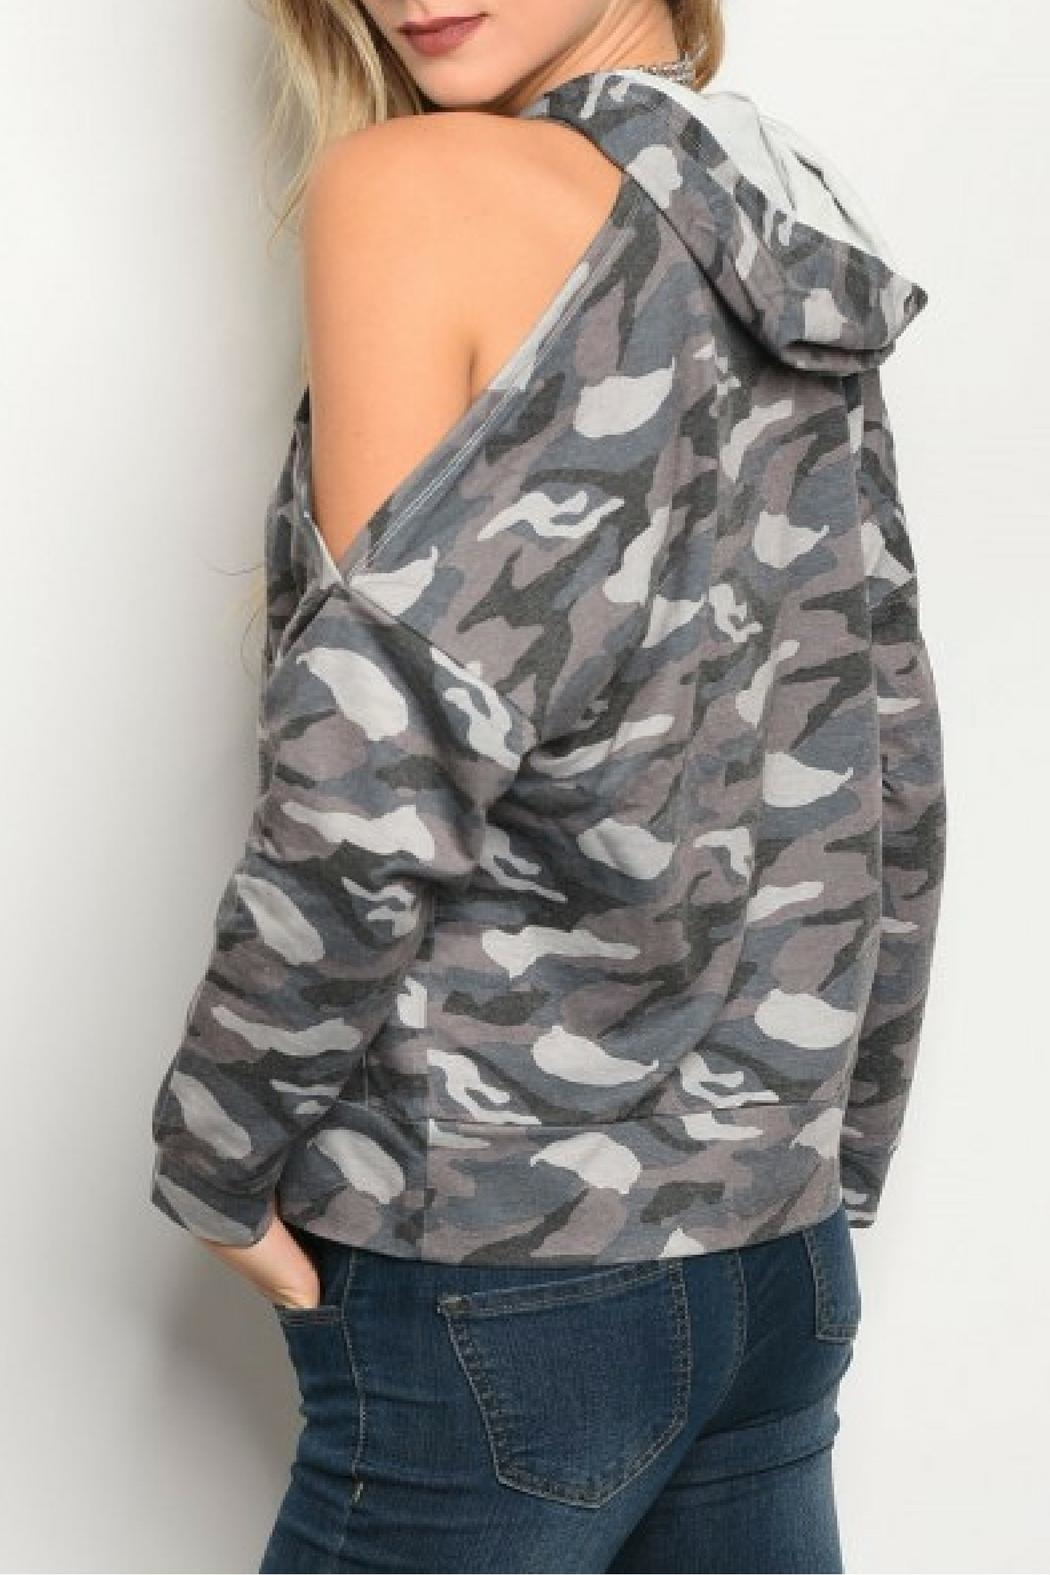 HYFVE Gray Camouflage Top - Front Full Image